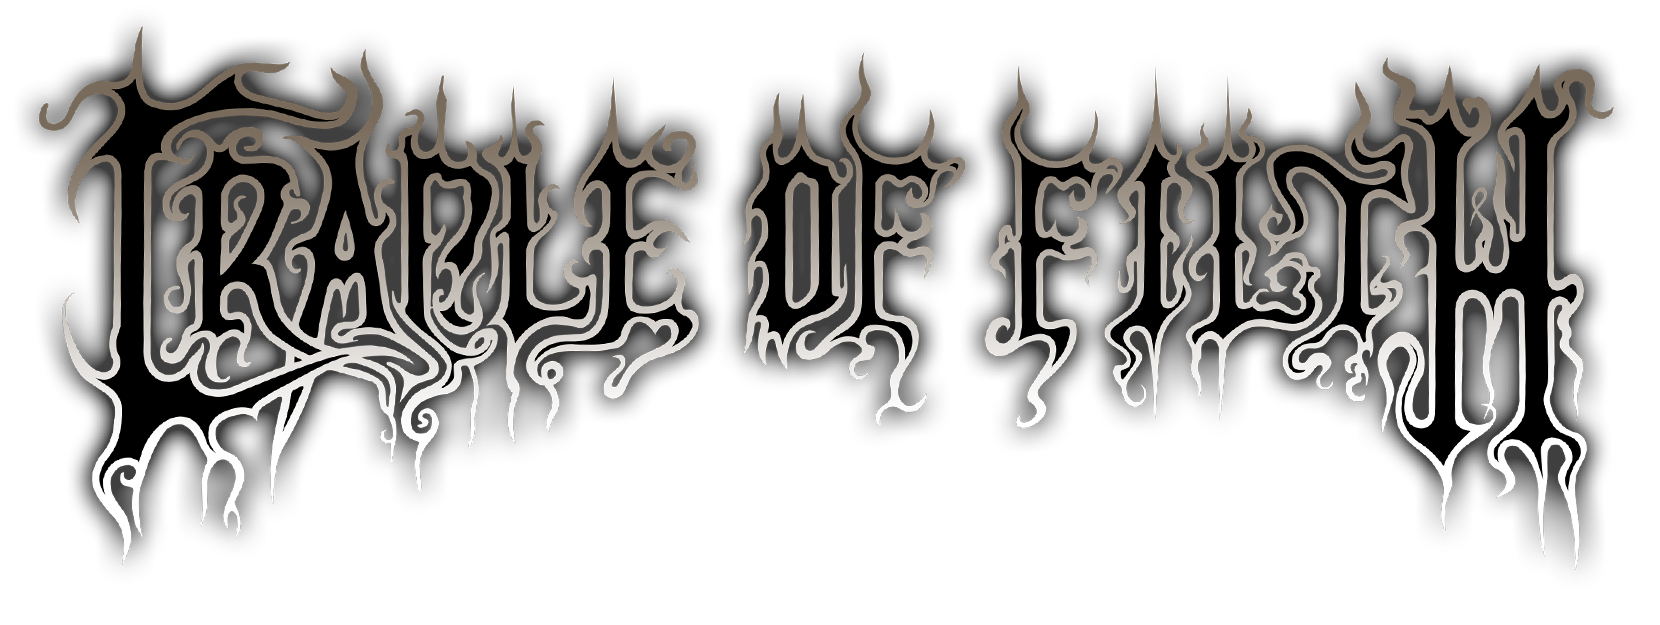 cradle_filth_logo1.png.pagespeed.ce.v6Mh_0lX-0.png